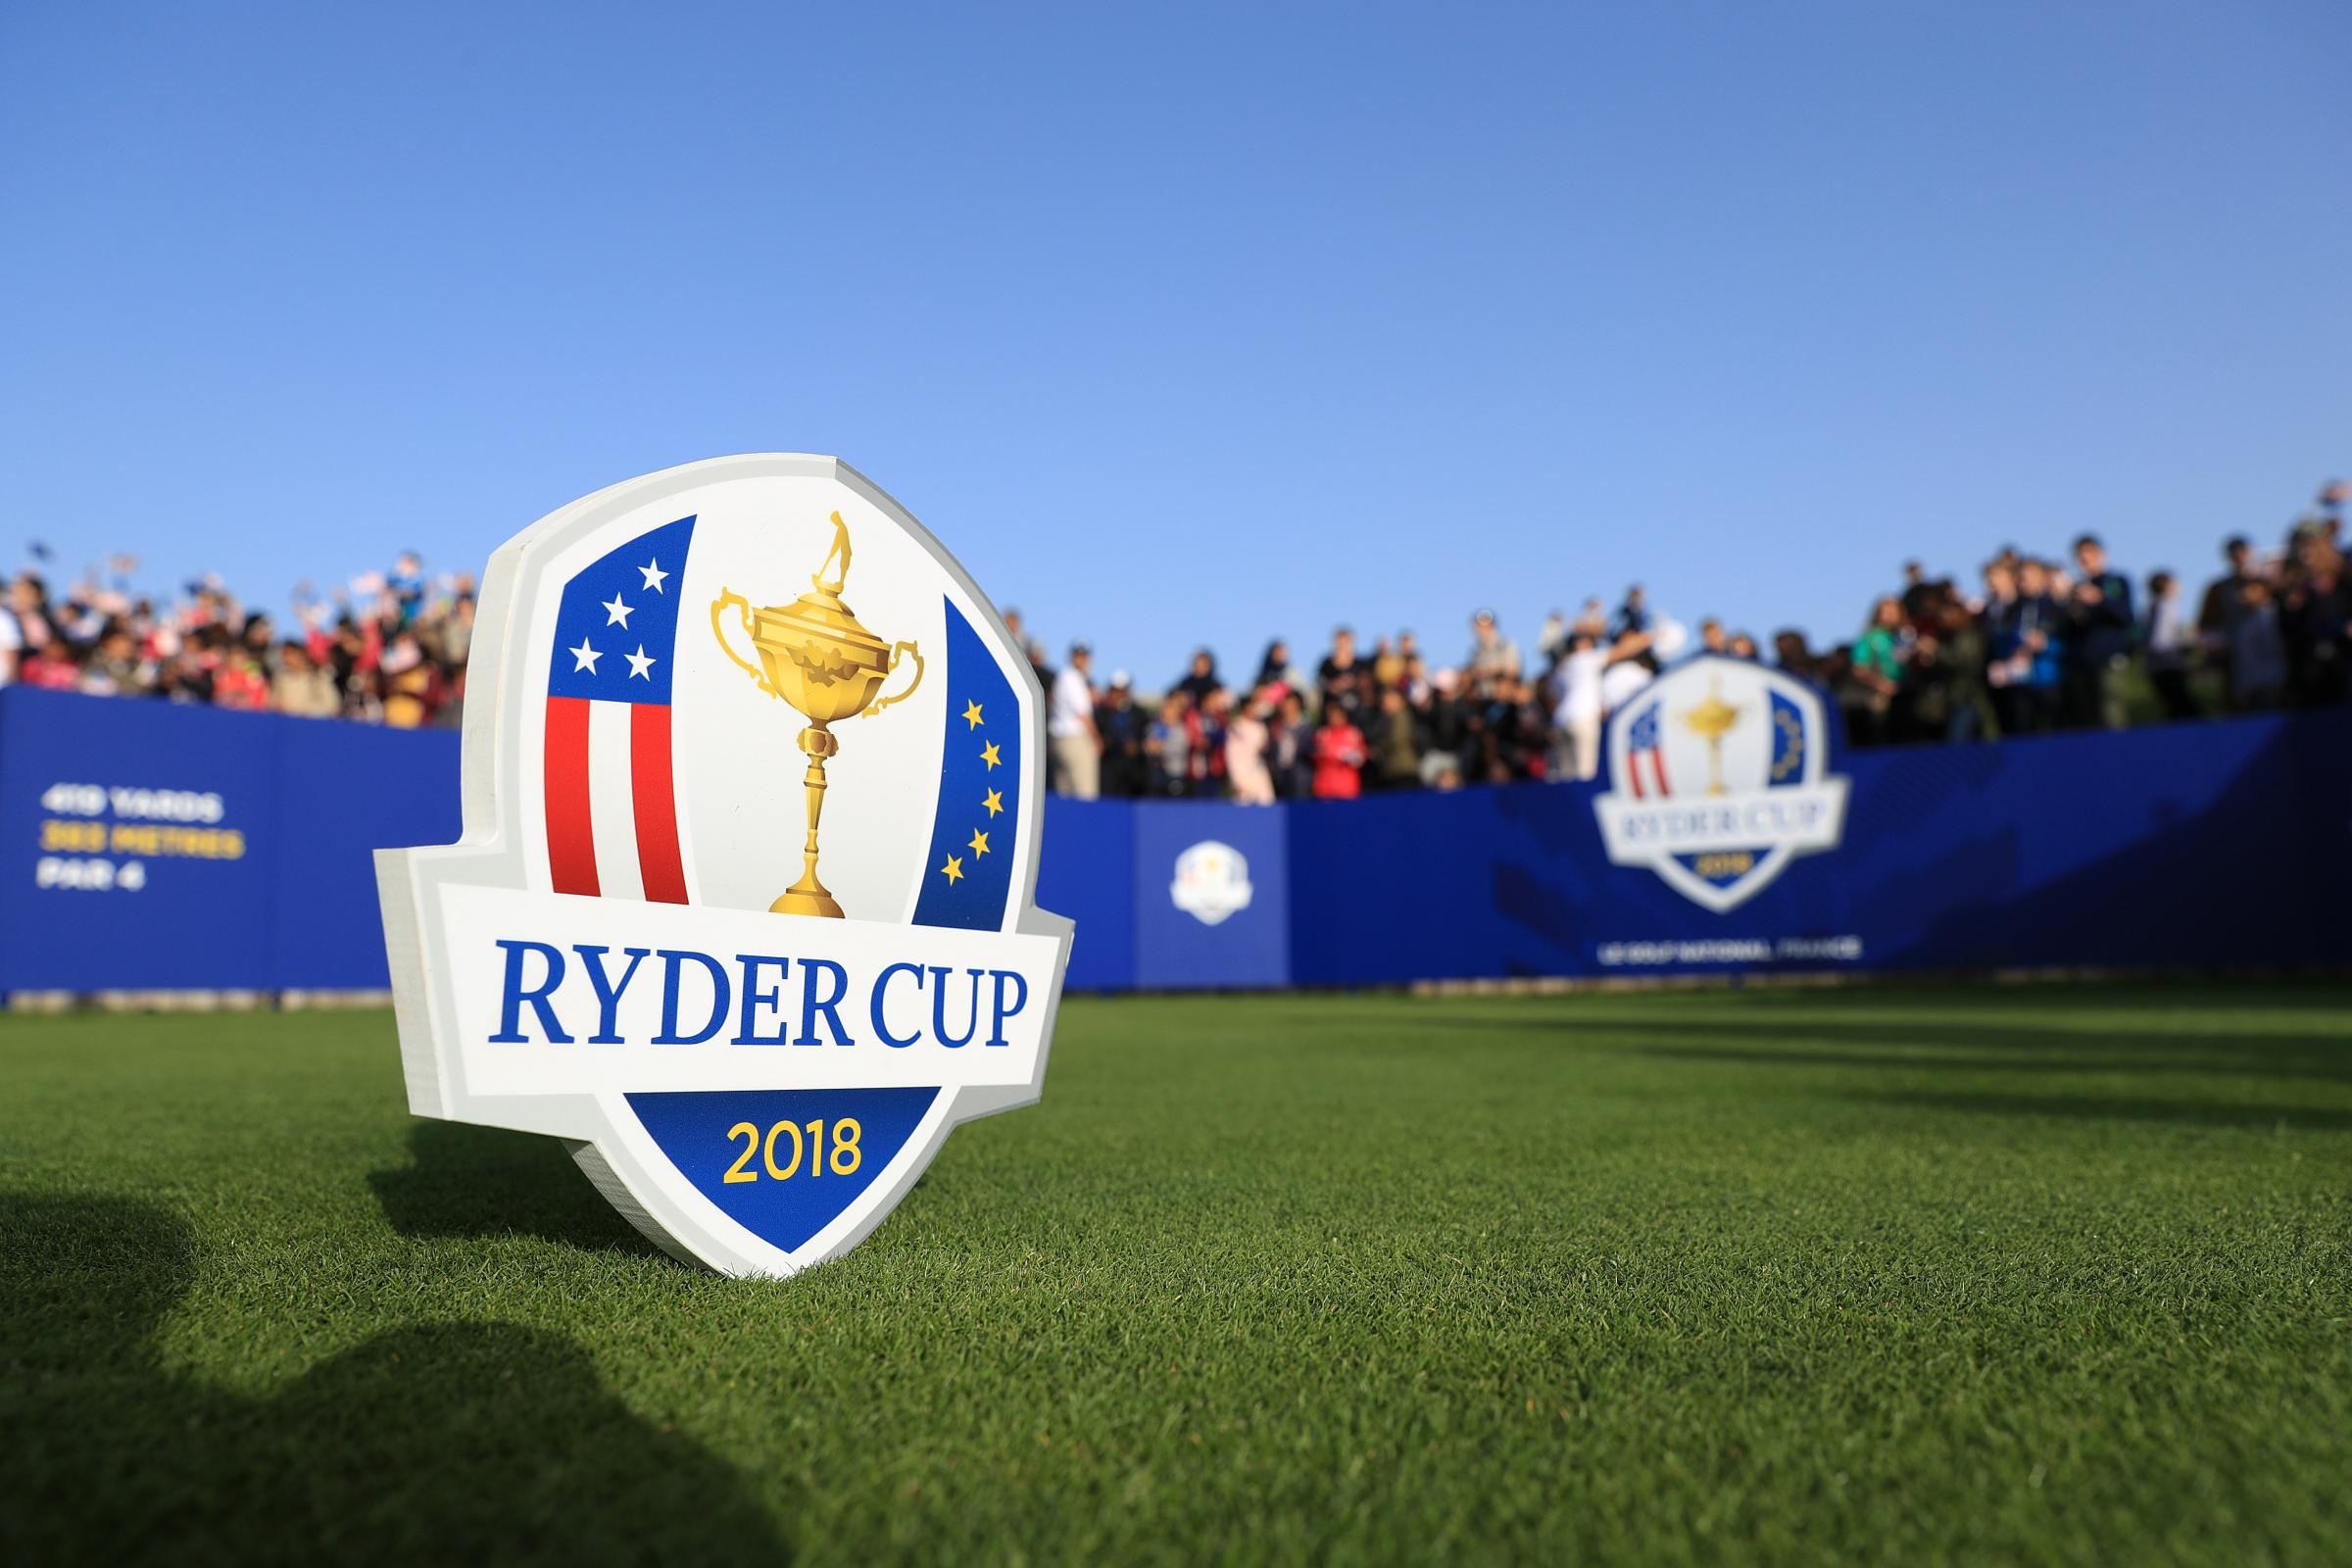 The Ryder Cup comes to France for the first time